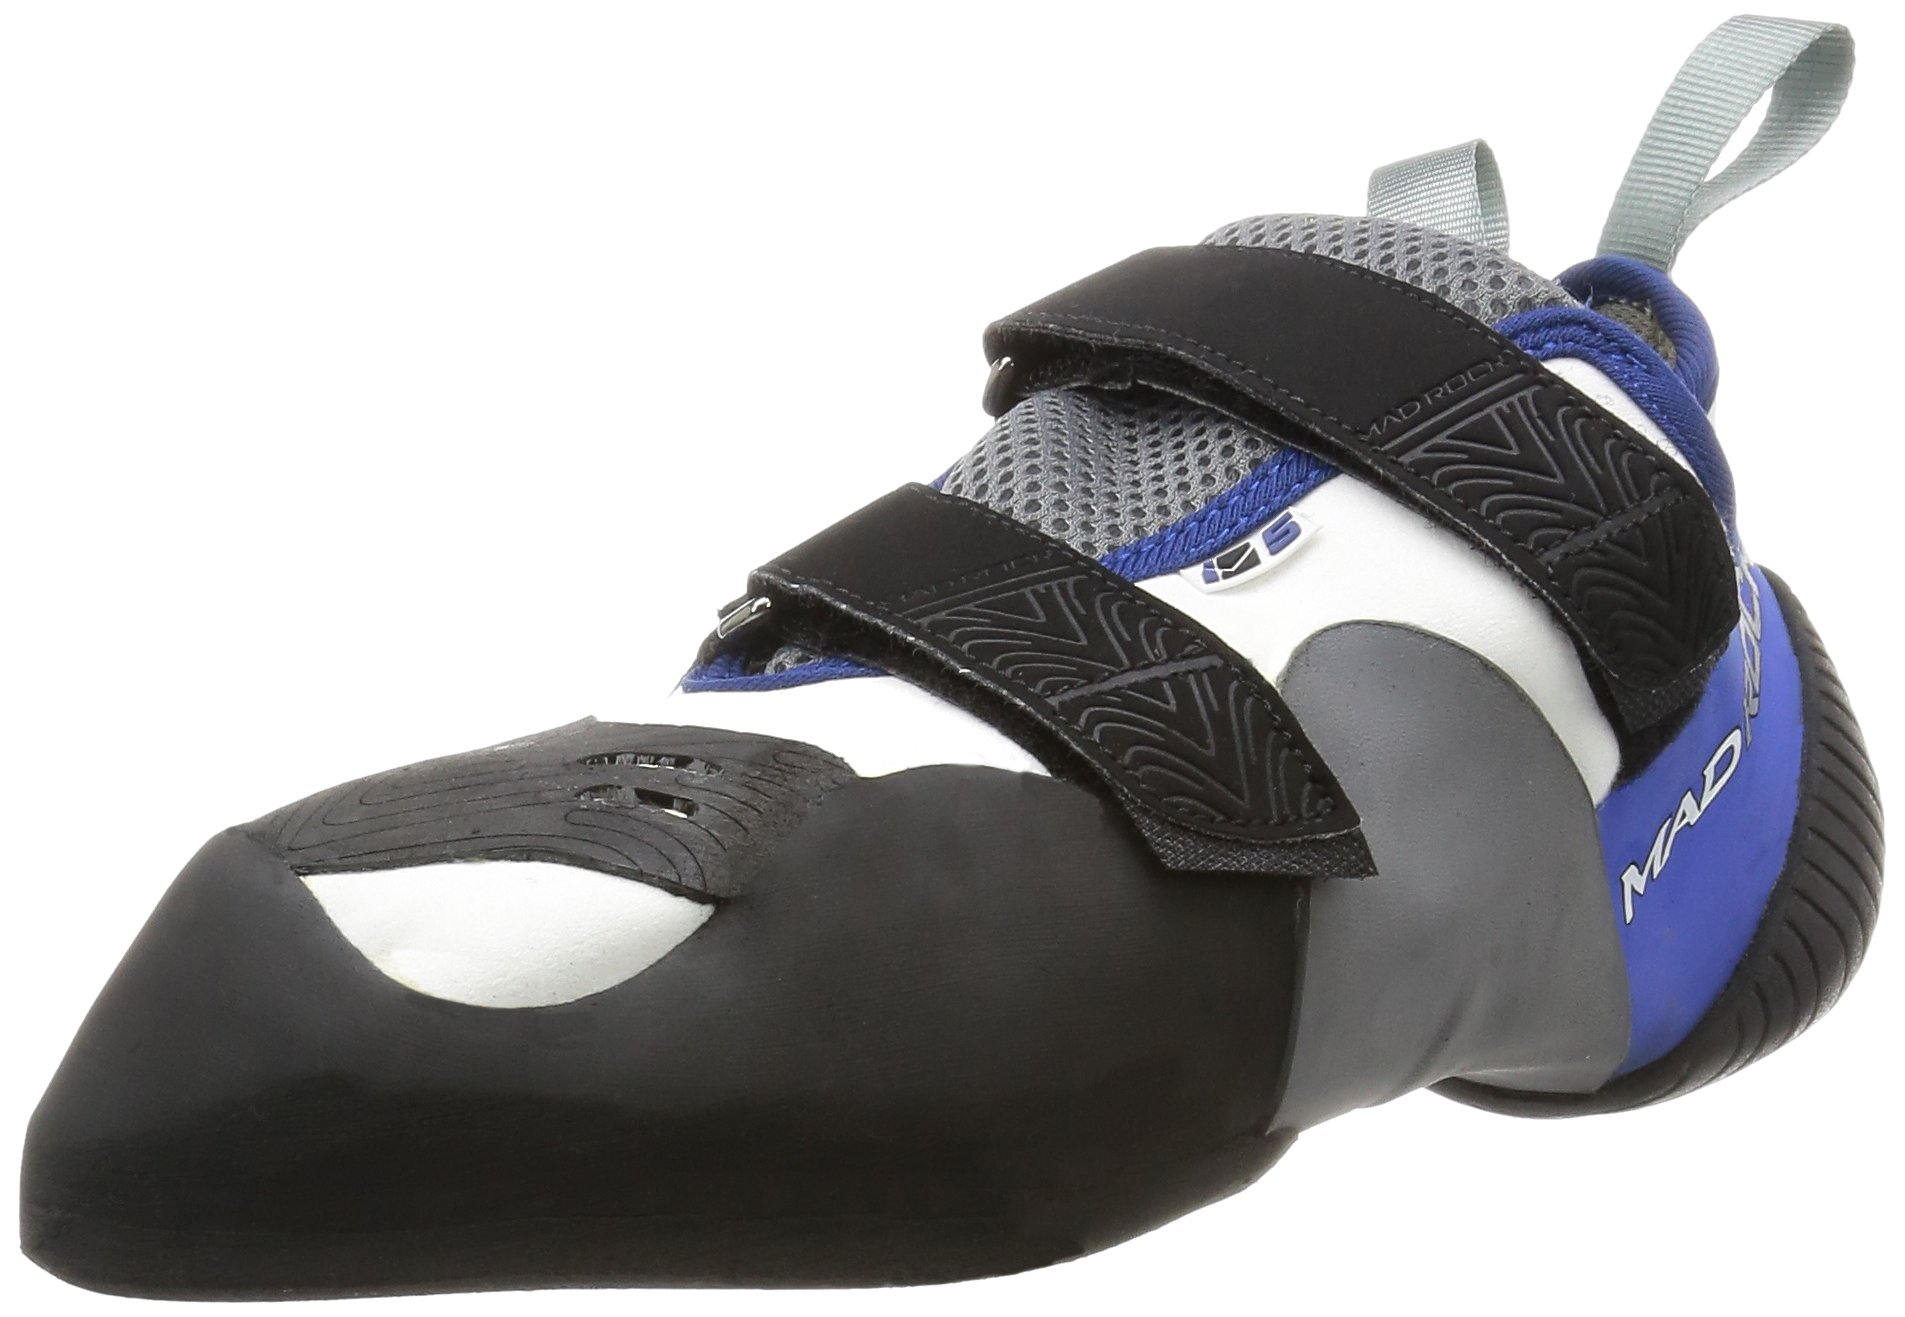 Mad Rock M5 Climbing Shoe Blue/White/Black/Grey, 7.5 by Mad Rock